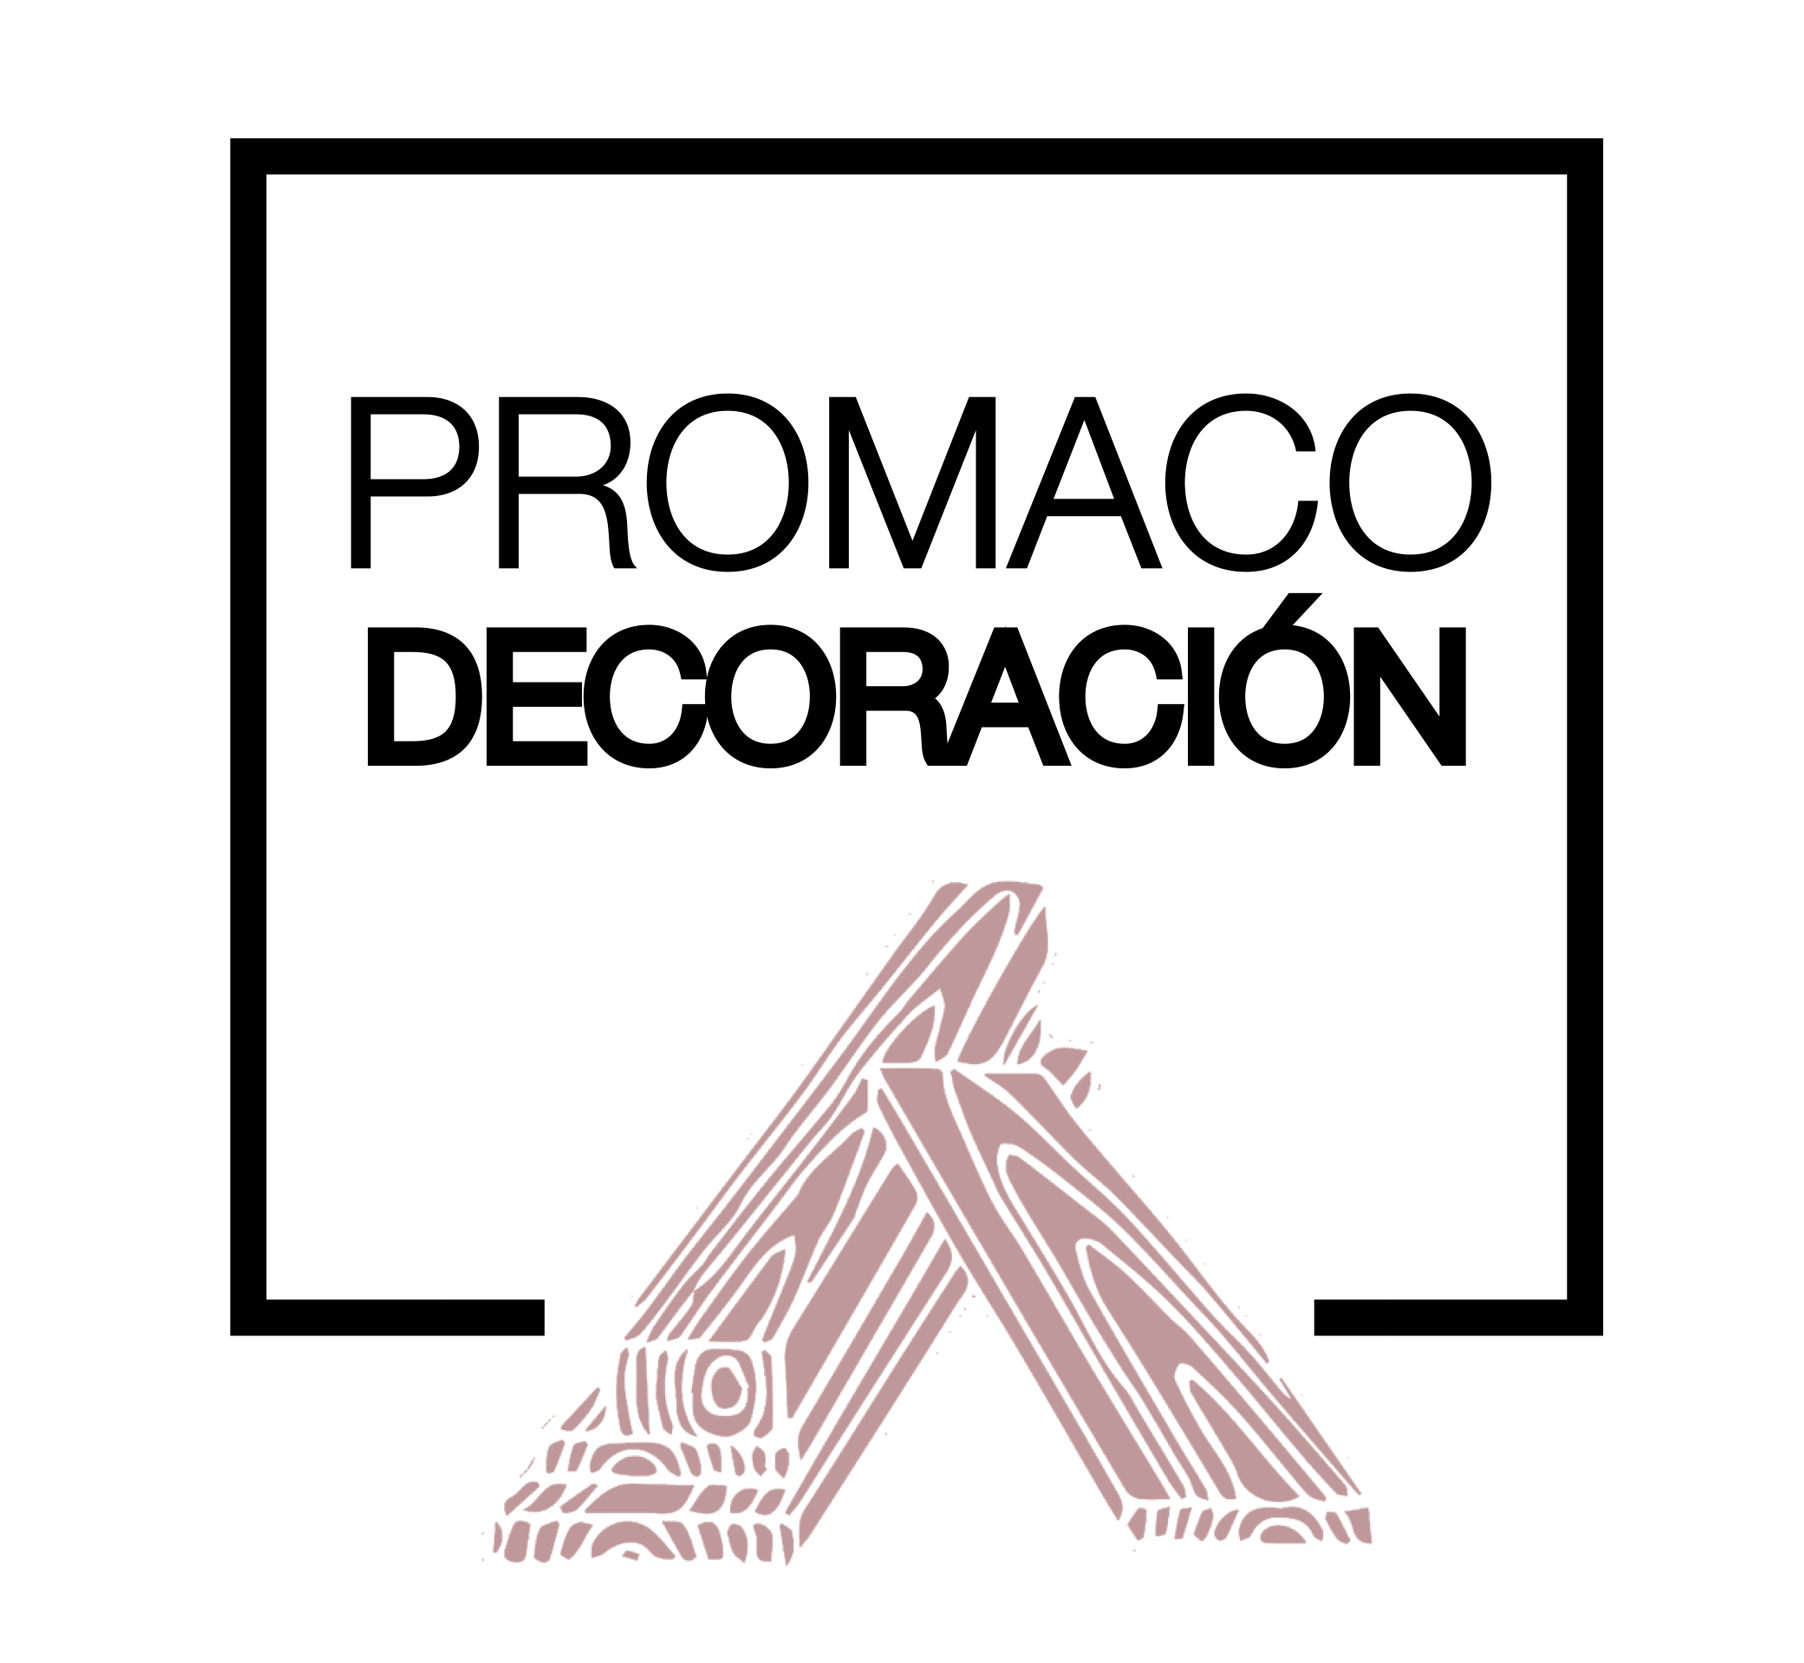 Promaco decoración